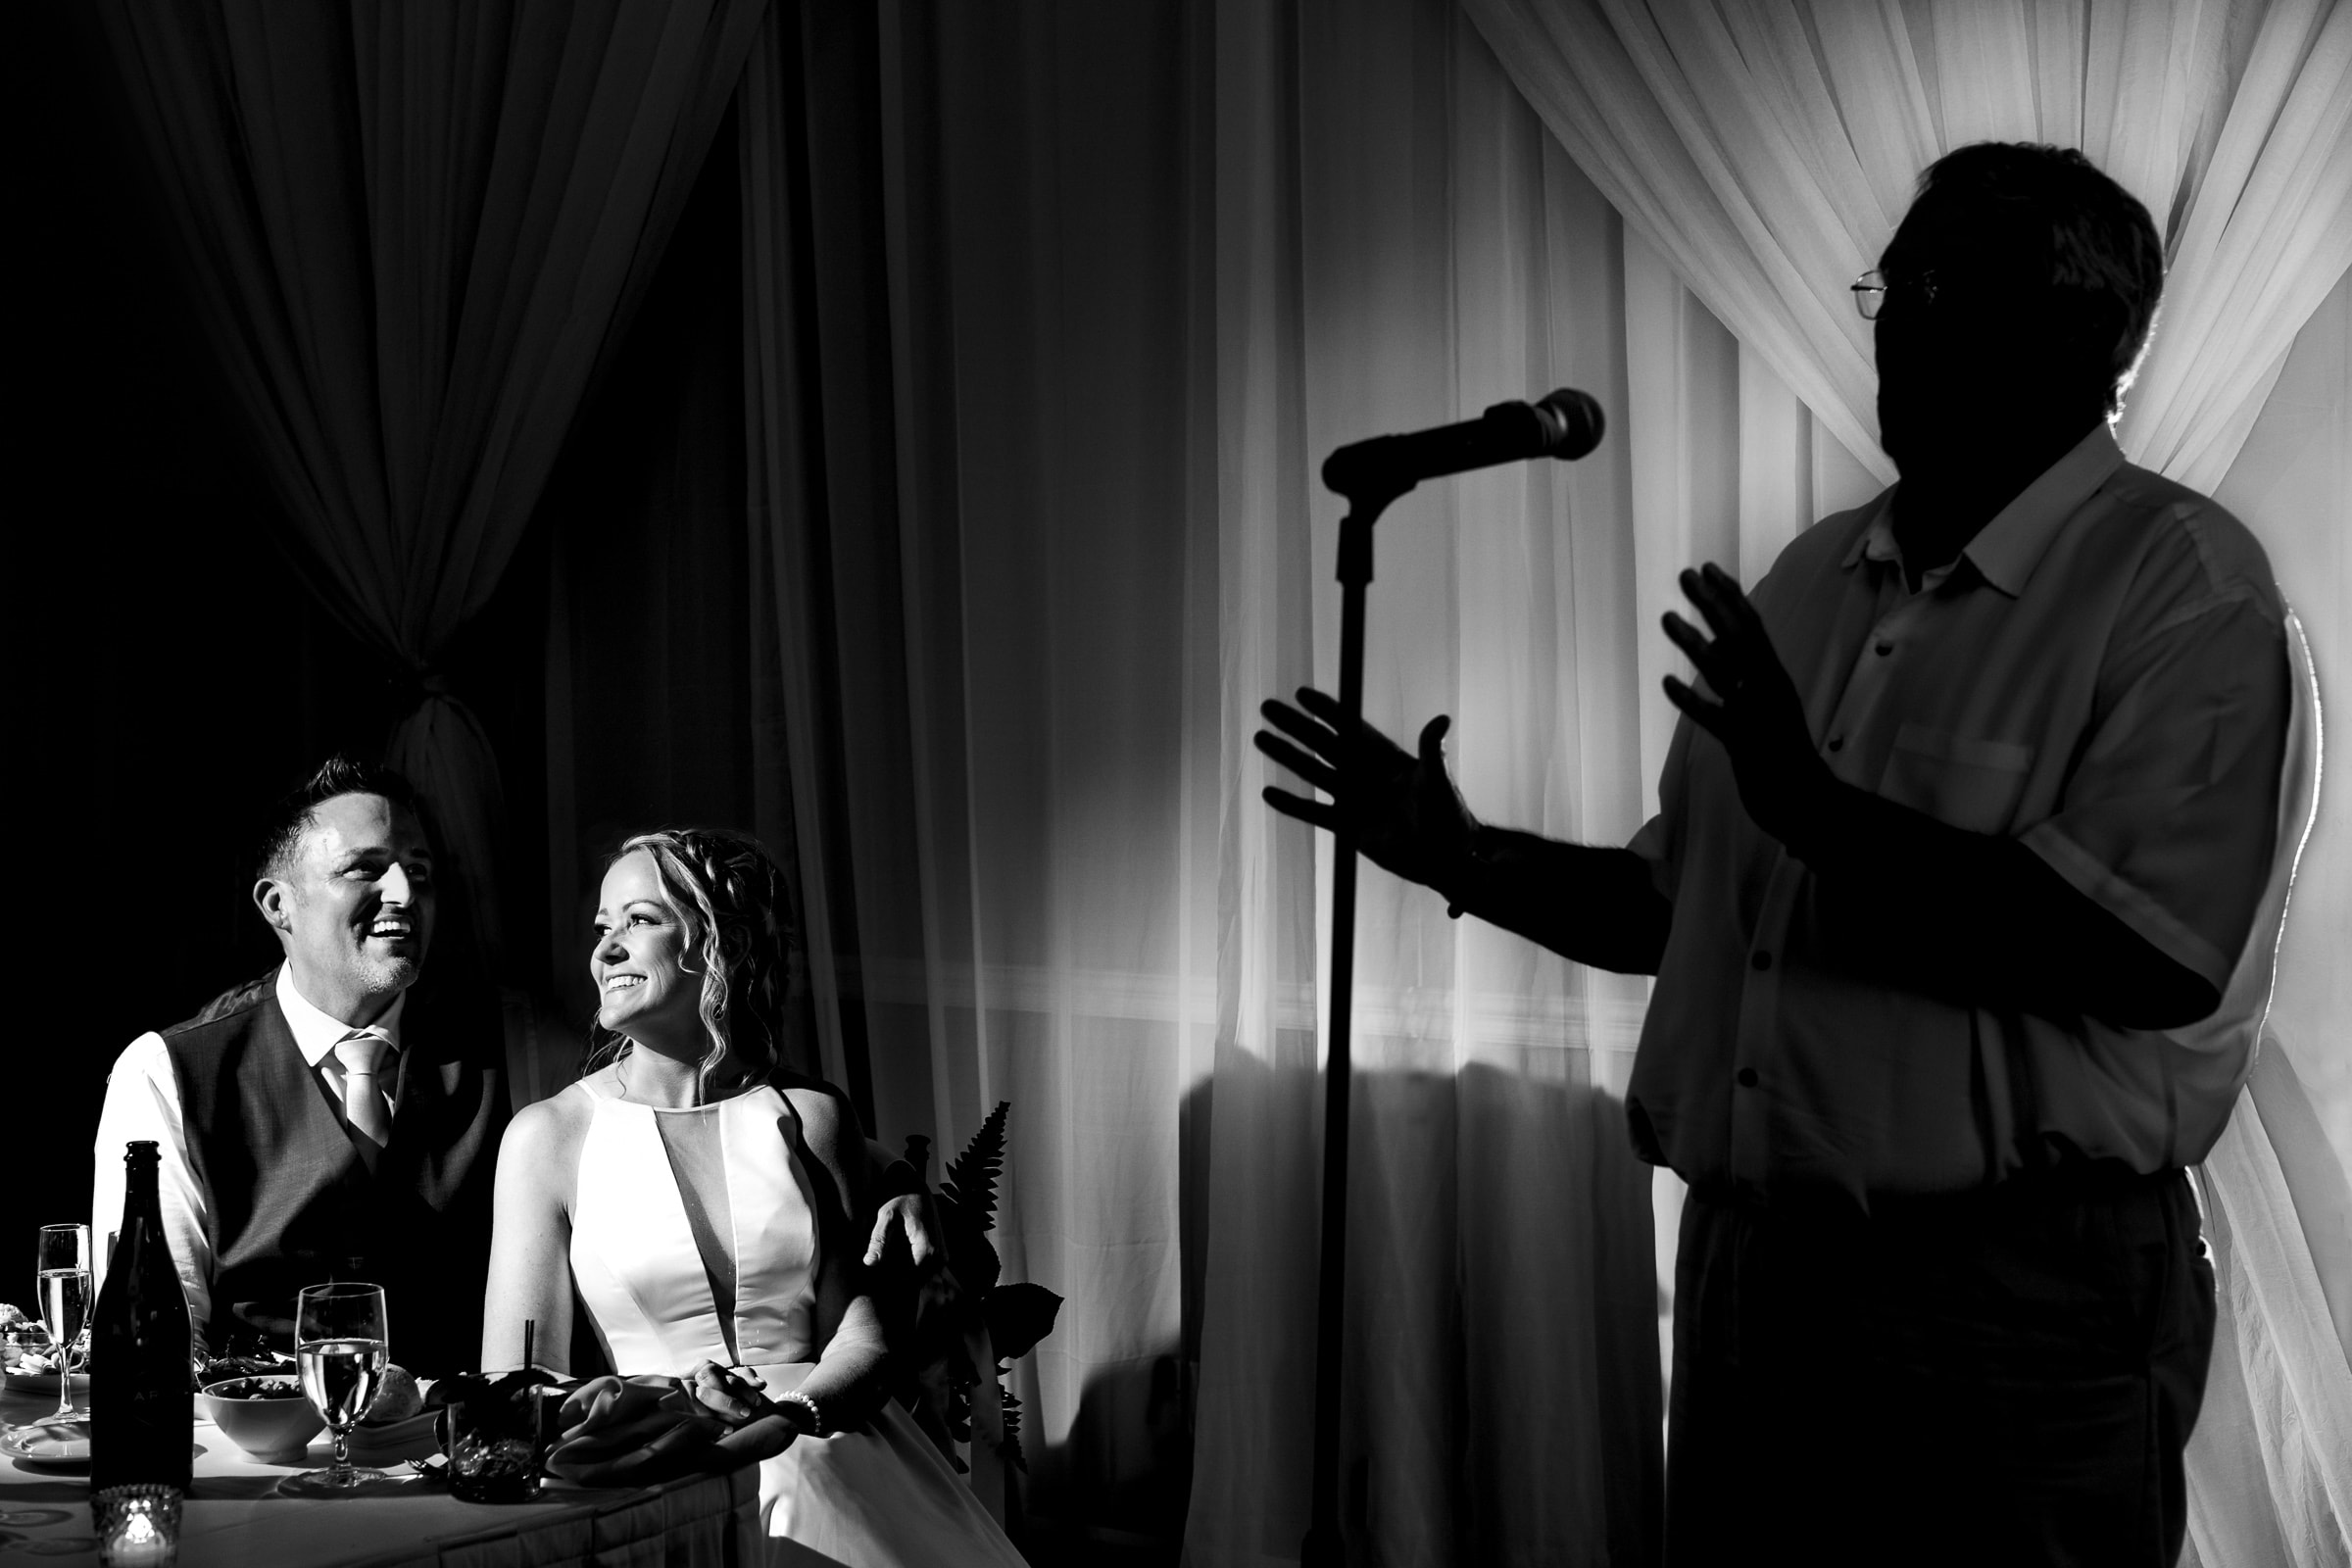 Fathers speech with hands during an Abernethy Center Portland Wedding reception in Oregon City